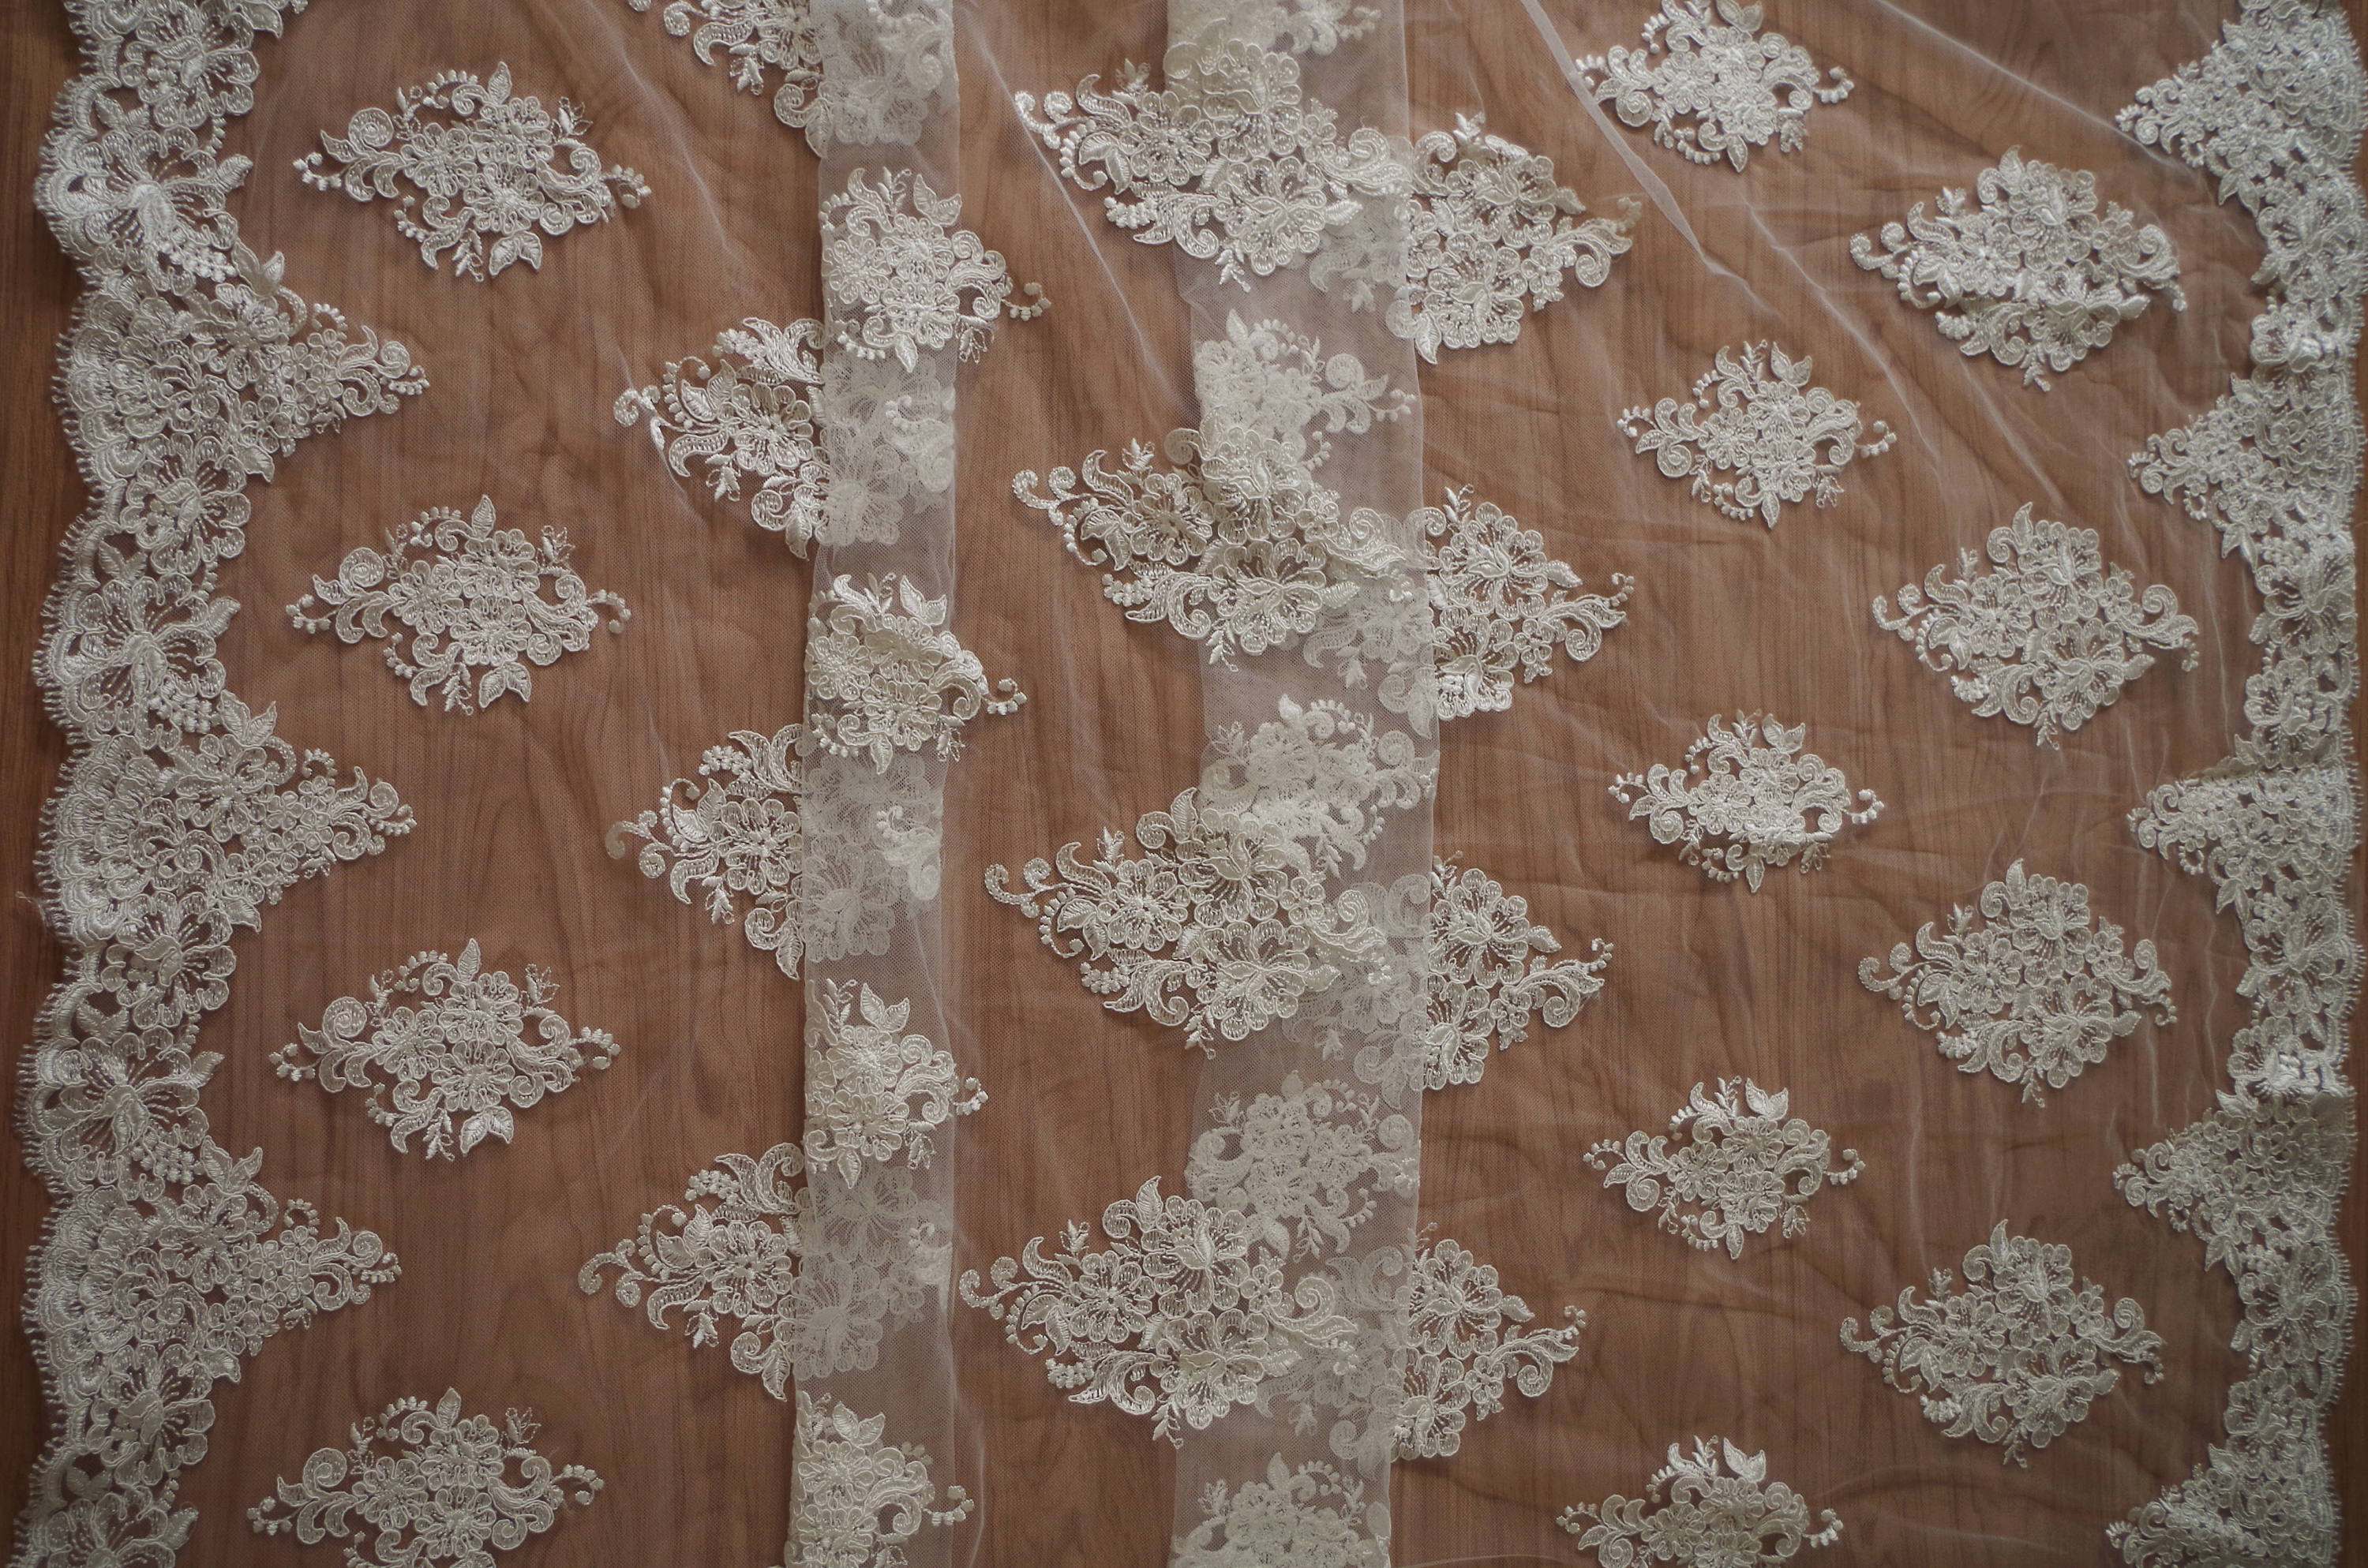 ivory cord lace fabric with retro florals, bridal lace fabric, alencon lace fabric with double scallops